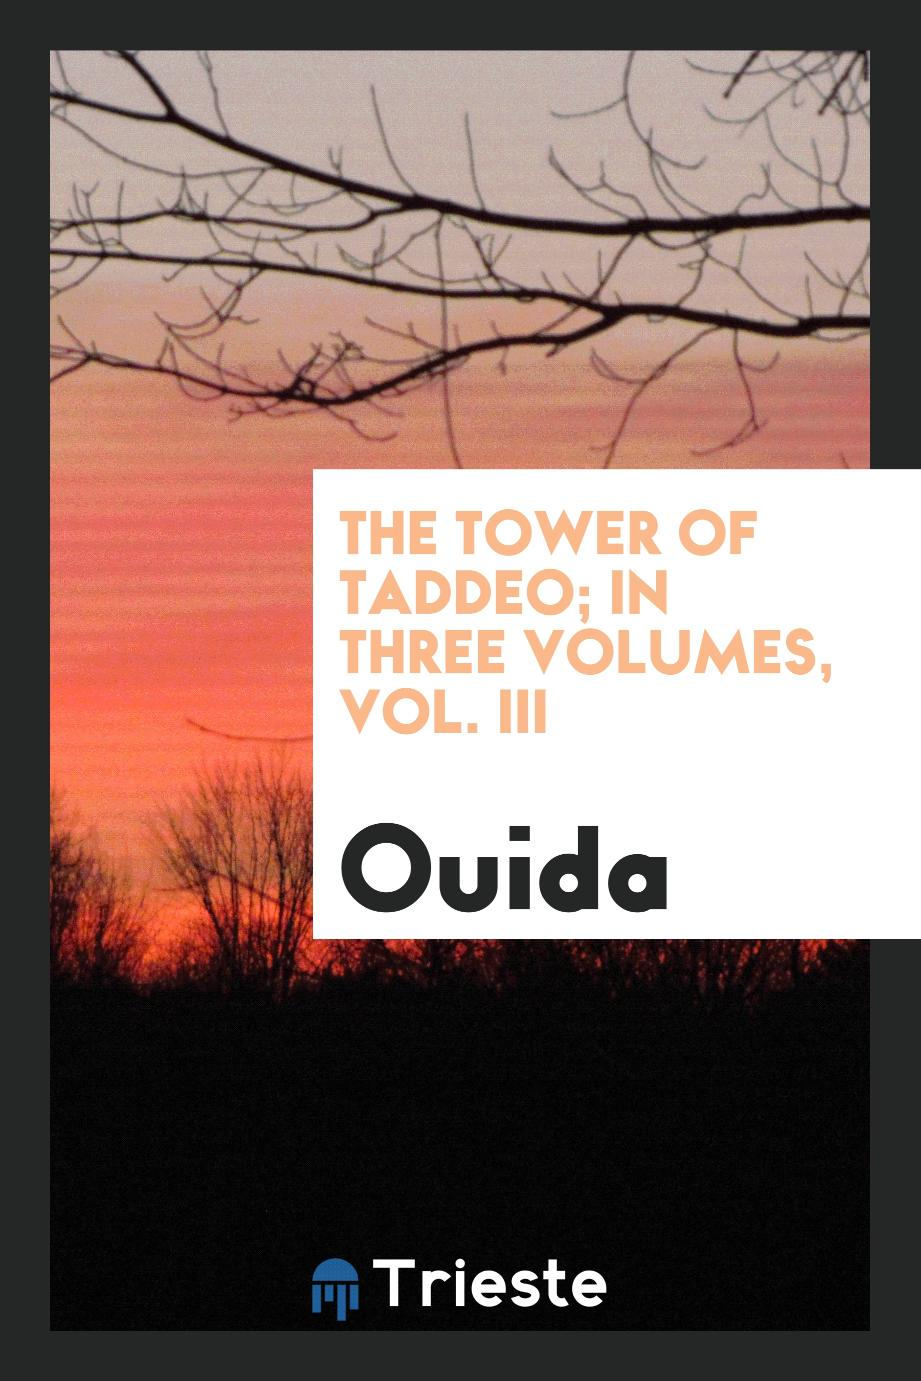 The tower of Taddeo; In three volumes, Vol. III